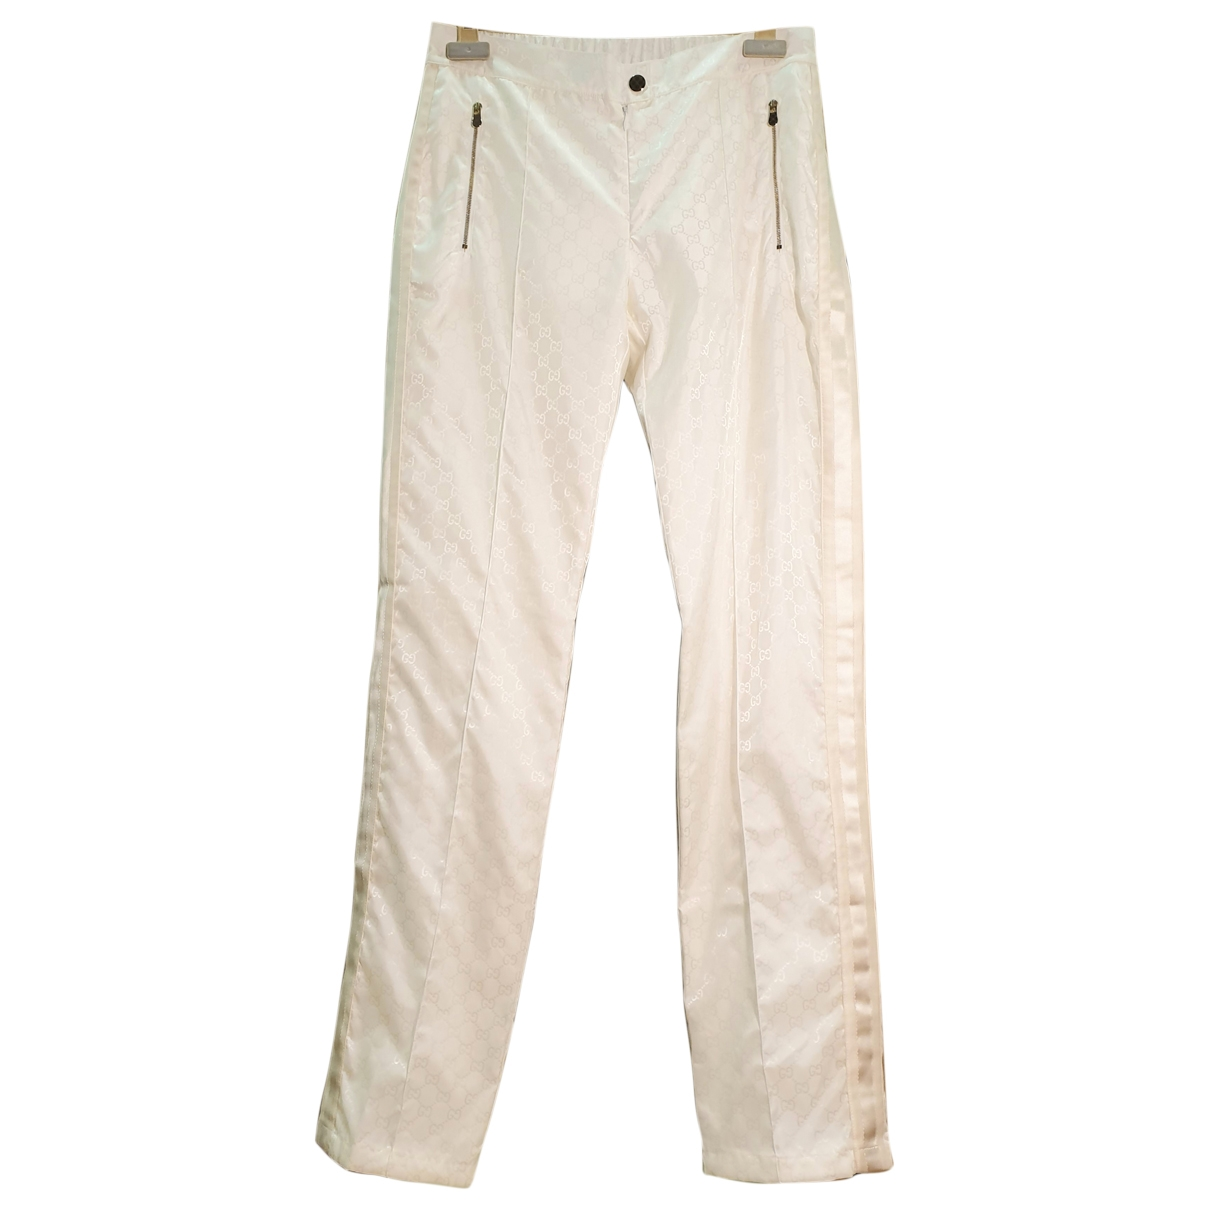 Gucci \N White Trousers for Women S International